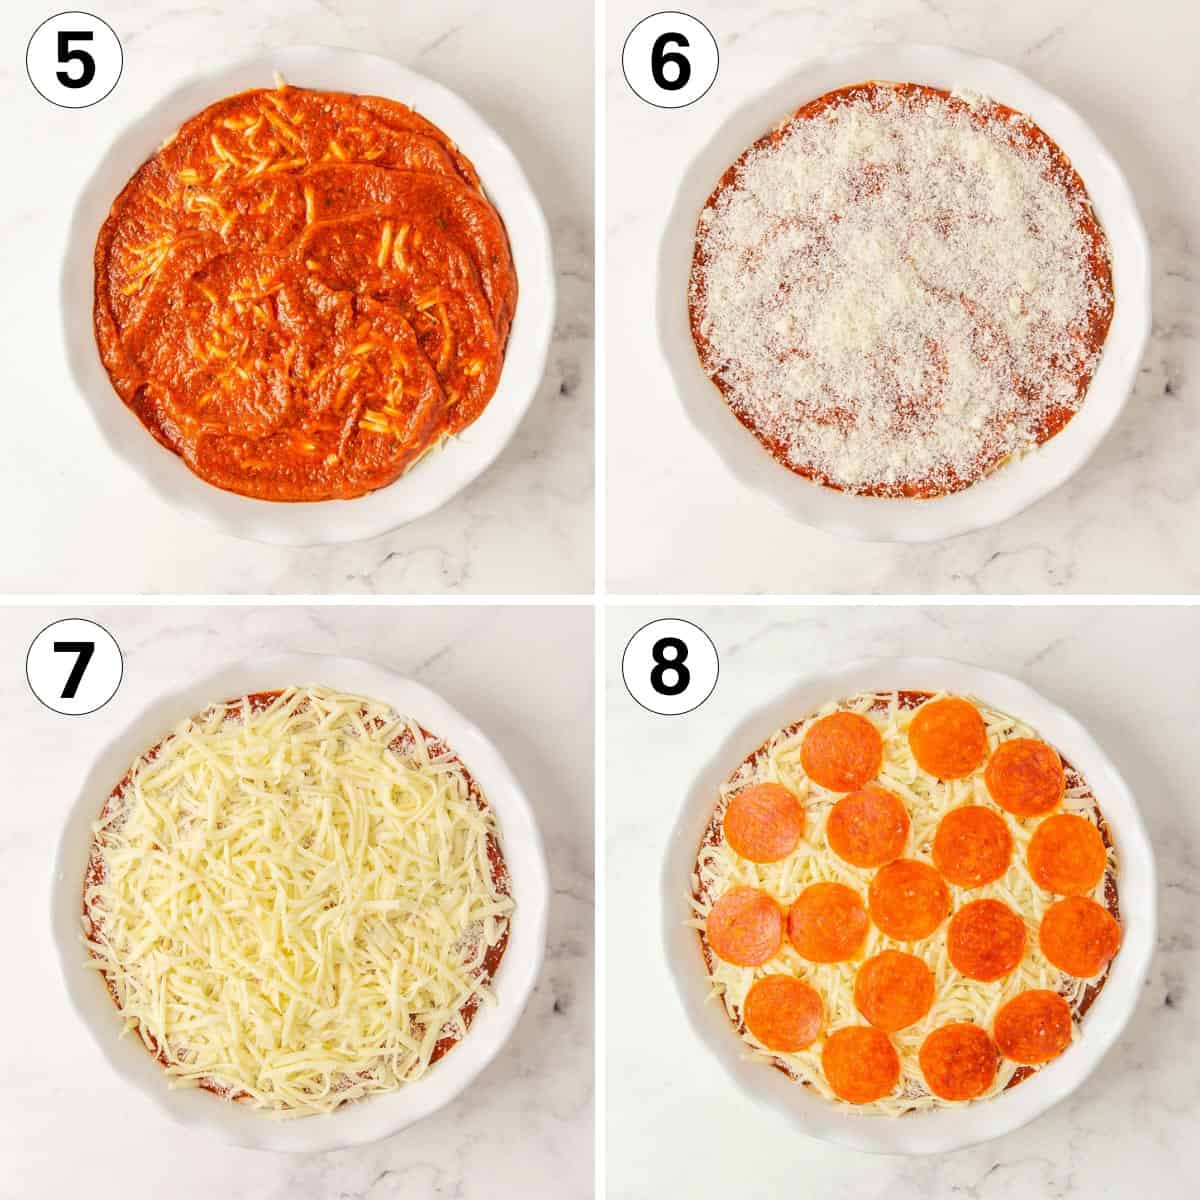 A collage of four images showing steps in making pizza dip.